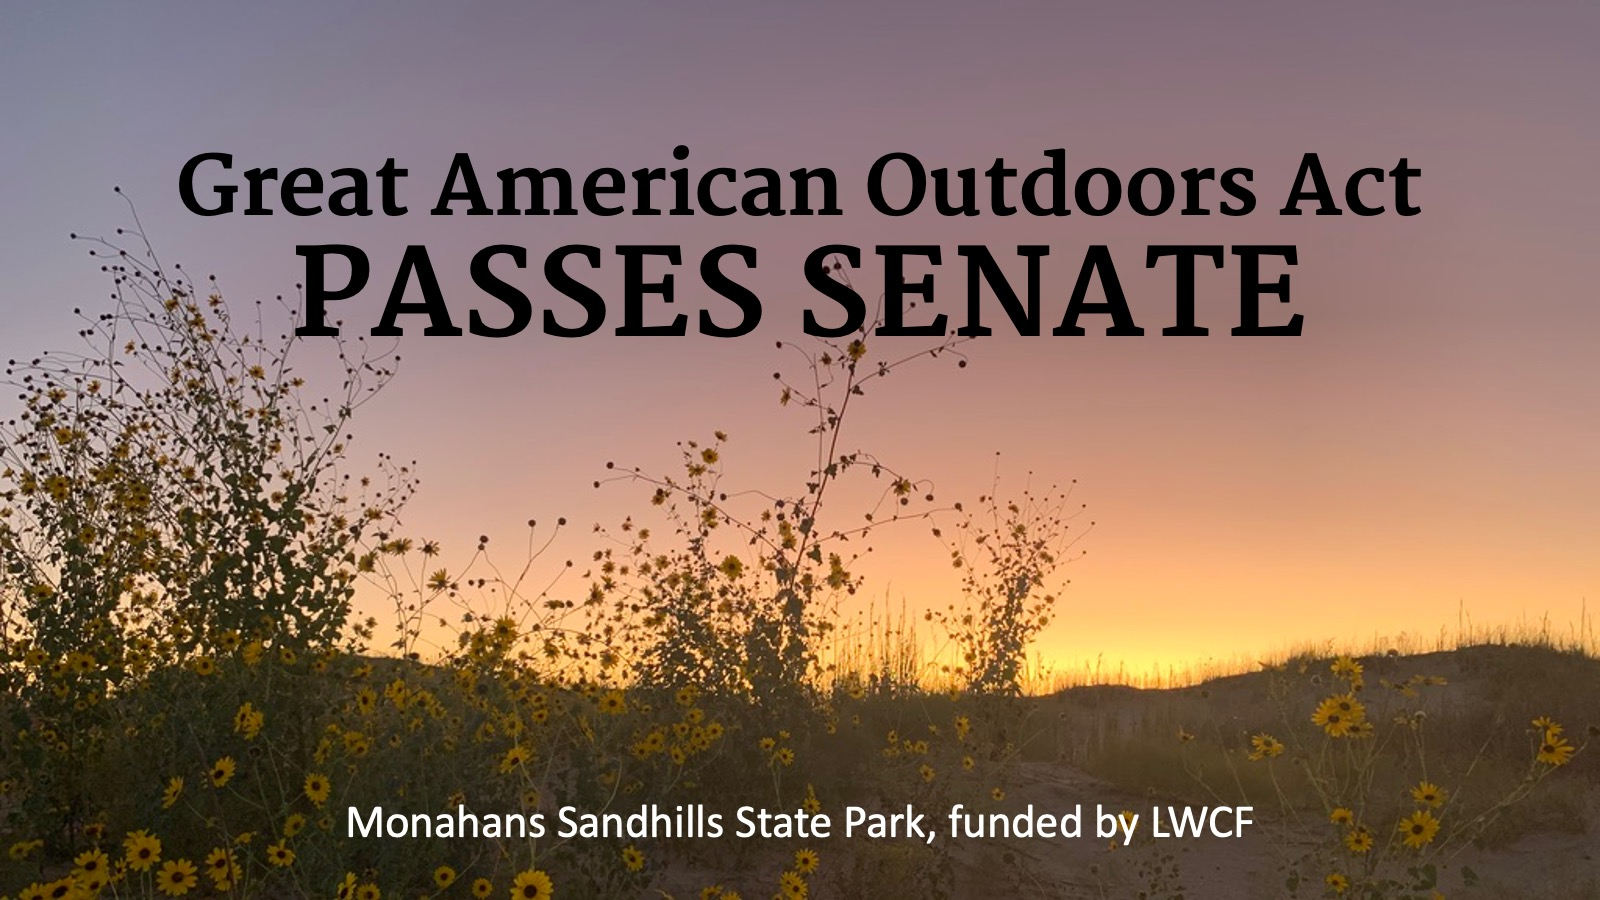 Photo of a sunset over sand dunes in Monahans Sandhills State Park with the text Great American Outdoors Act Passes Senate